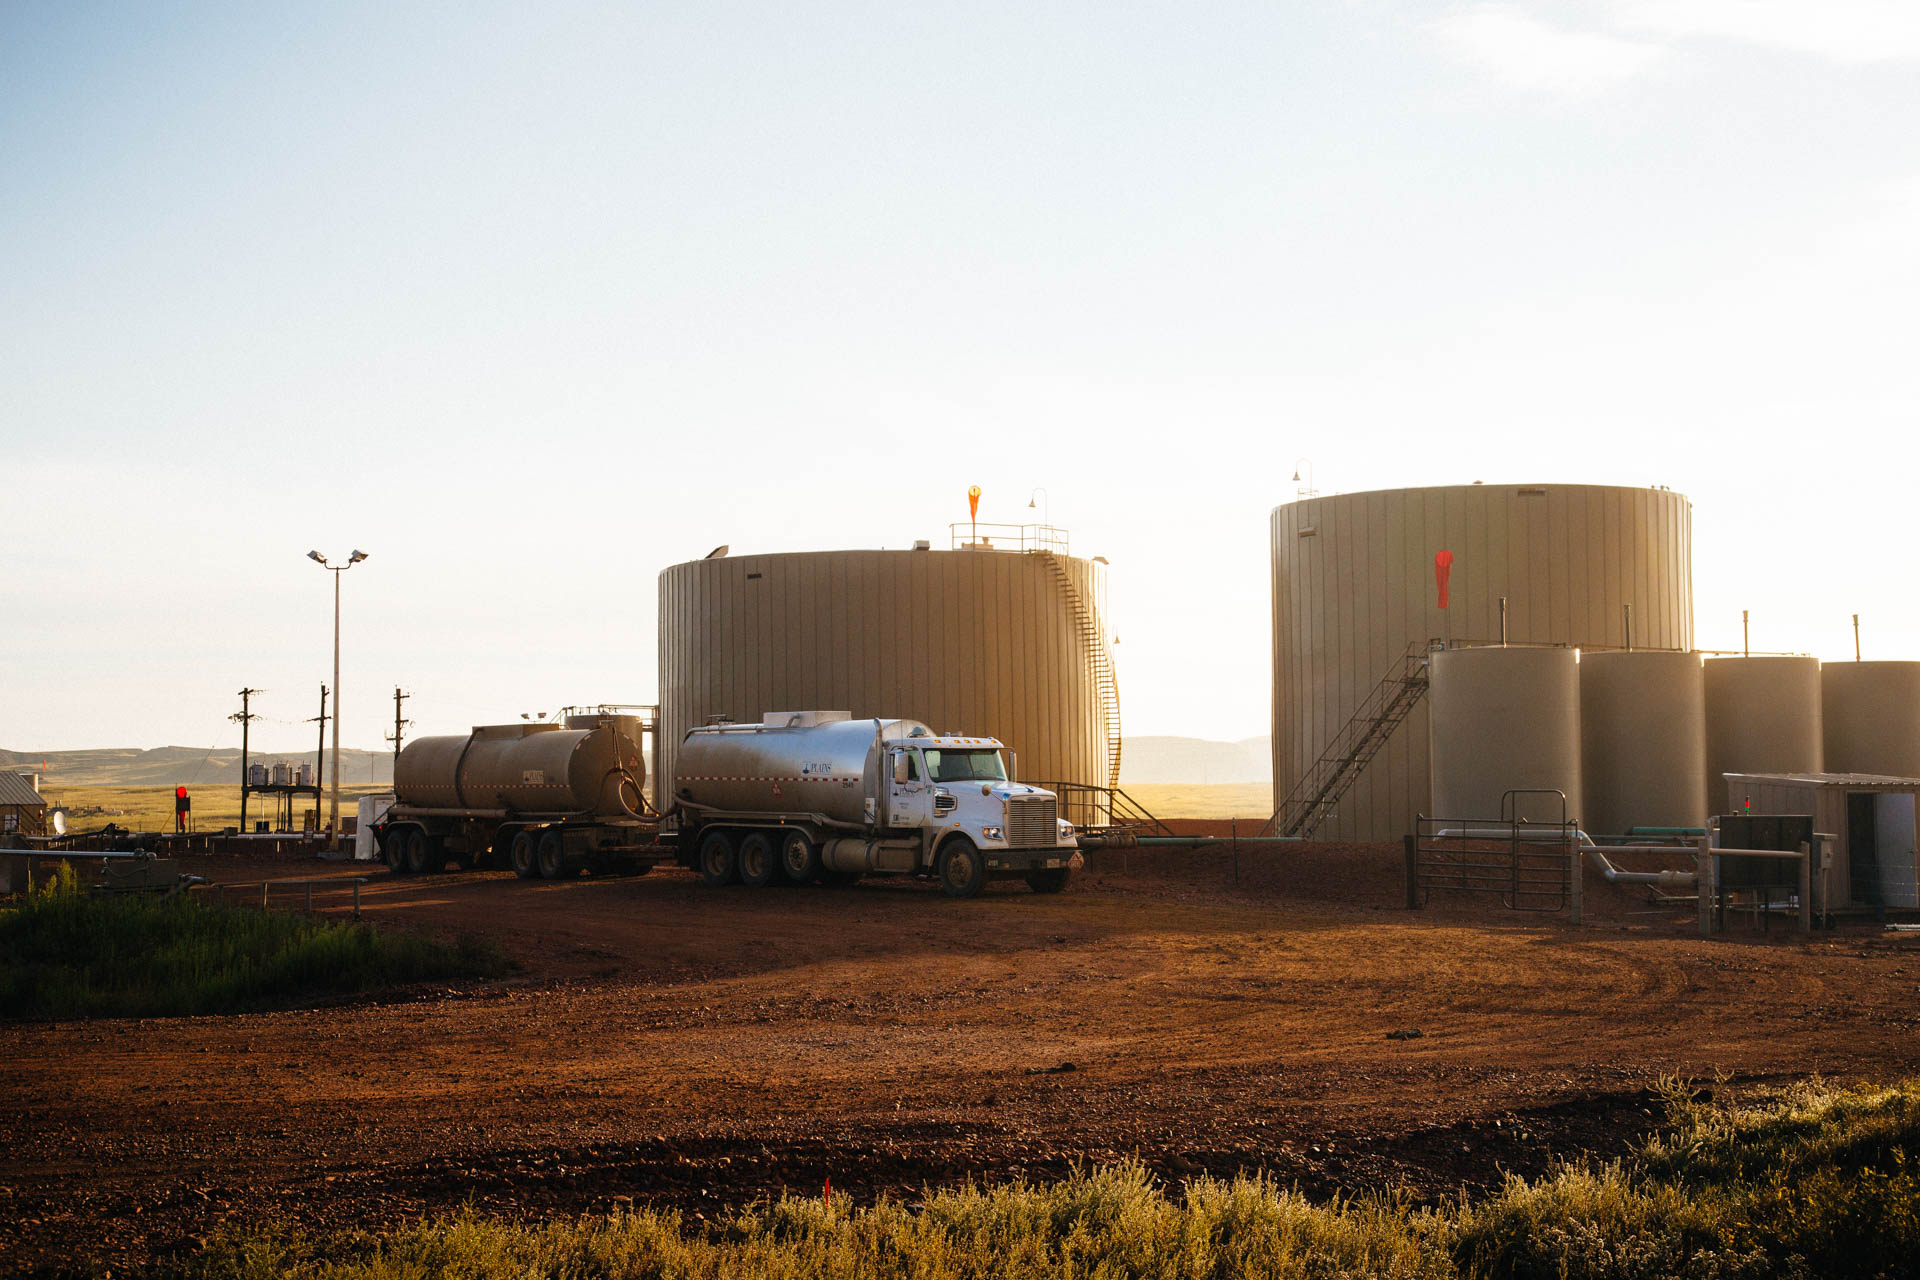 crude-oil-truck-loading-storage-tanks-bakken